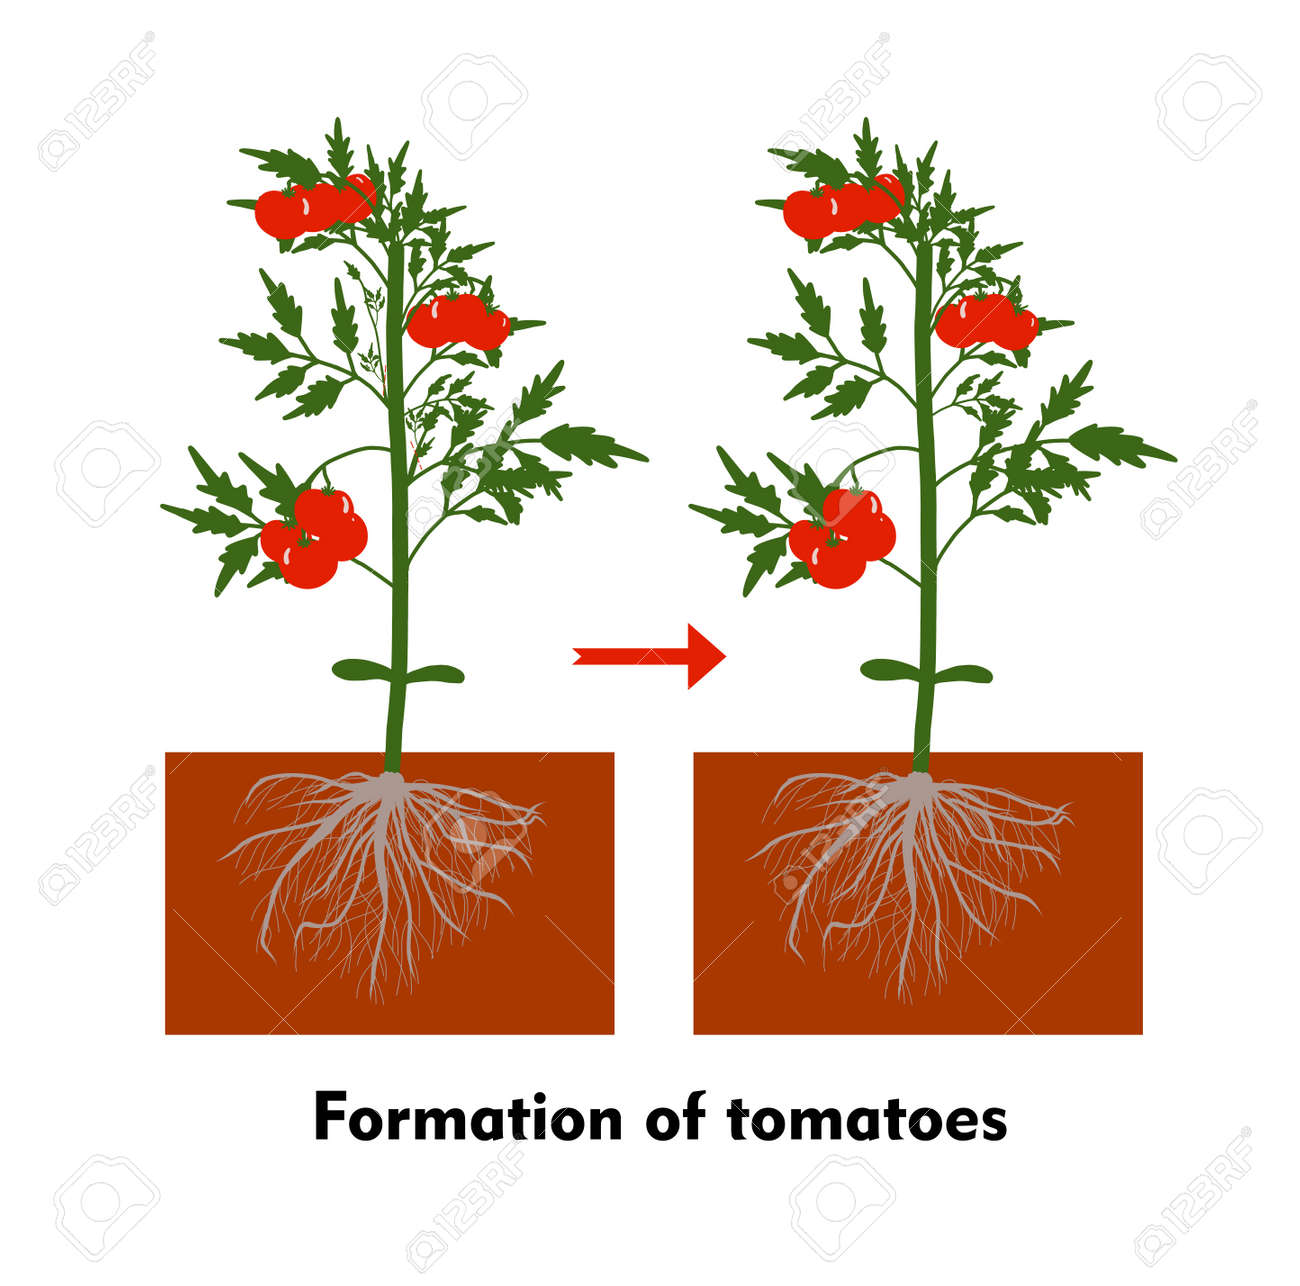 Planting tomatoes in the ground. Growing a tomato. Seedling. Disembarkation in the greenhouse. Vegetable growing technology. Horticulture. Determinant and indeterminate hybrids. - 168914929